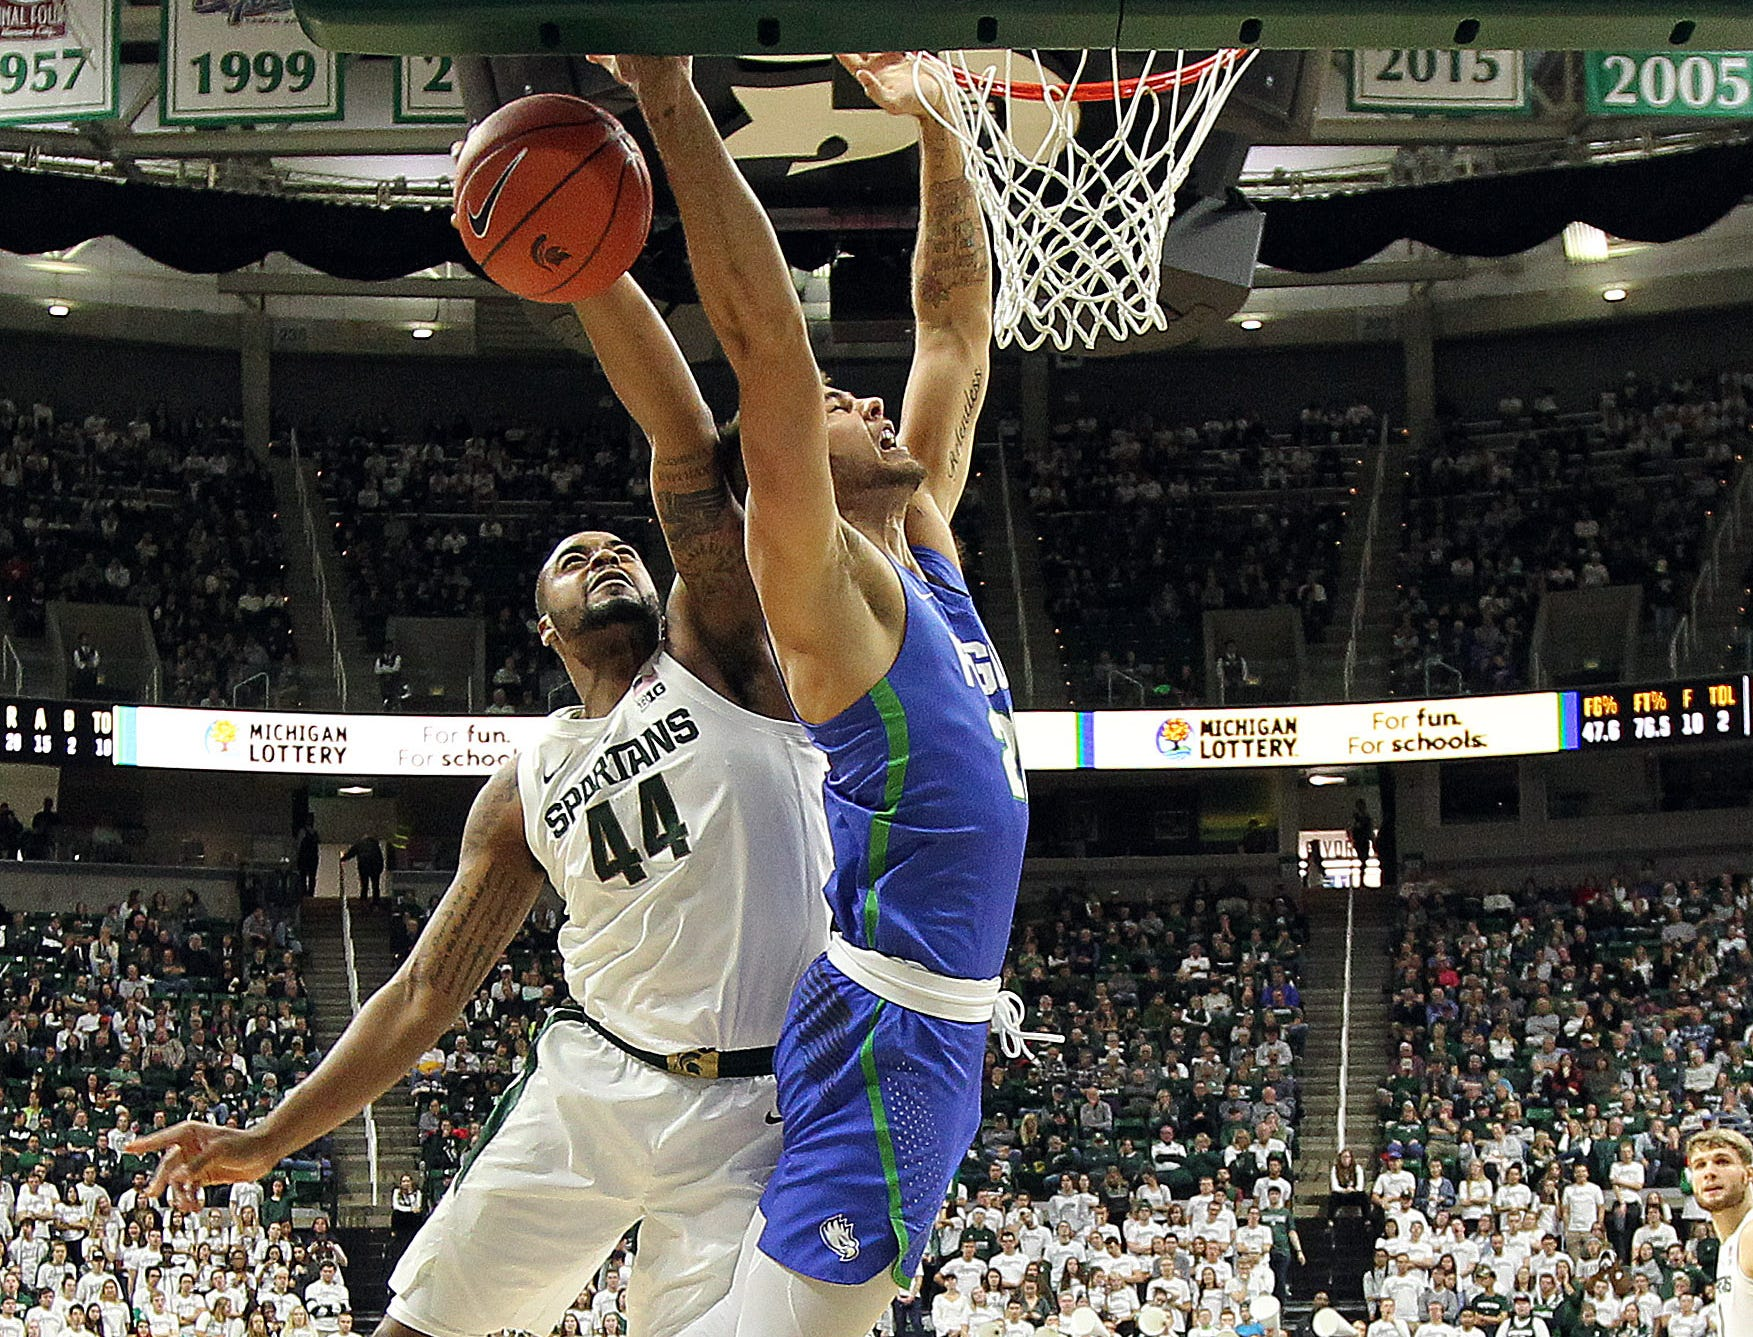 Nov 11, 2018; East Lansing, MI, USA; Michigan State Spartans forward Nick Ward (44) blocks the shot of Florida Gulf Coast Eagles forward Brady Ernst (21) during the second half of a game at the Breslin Center. Mandatory Credit: Mike Carter-USA TODAY Sports